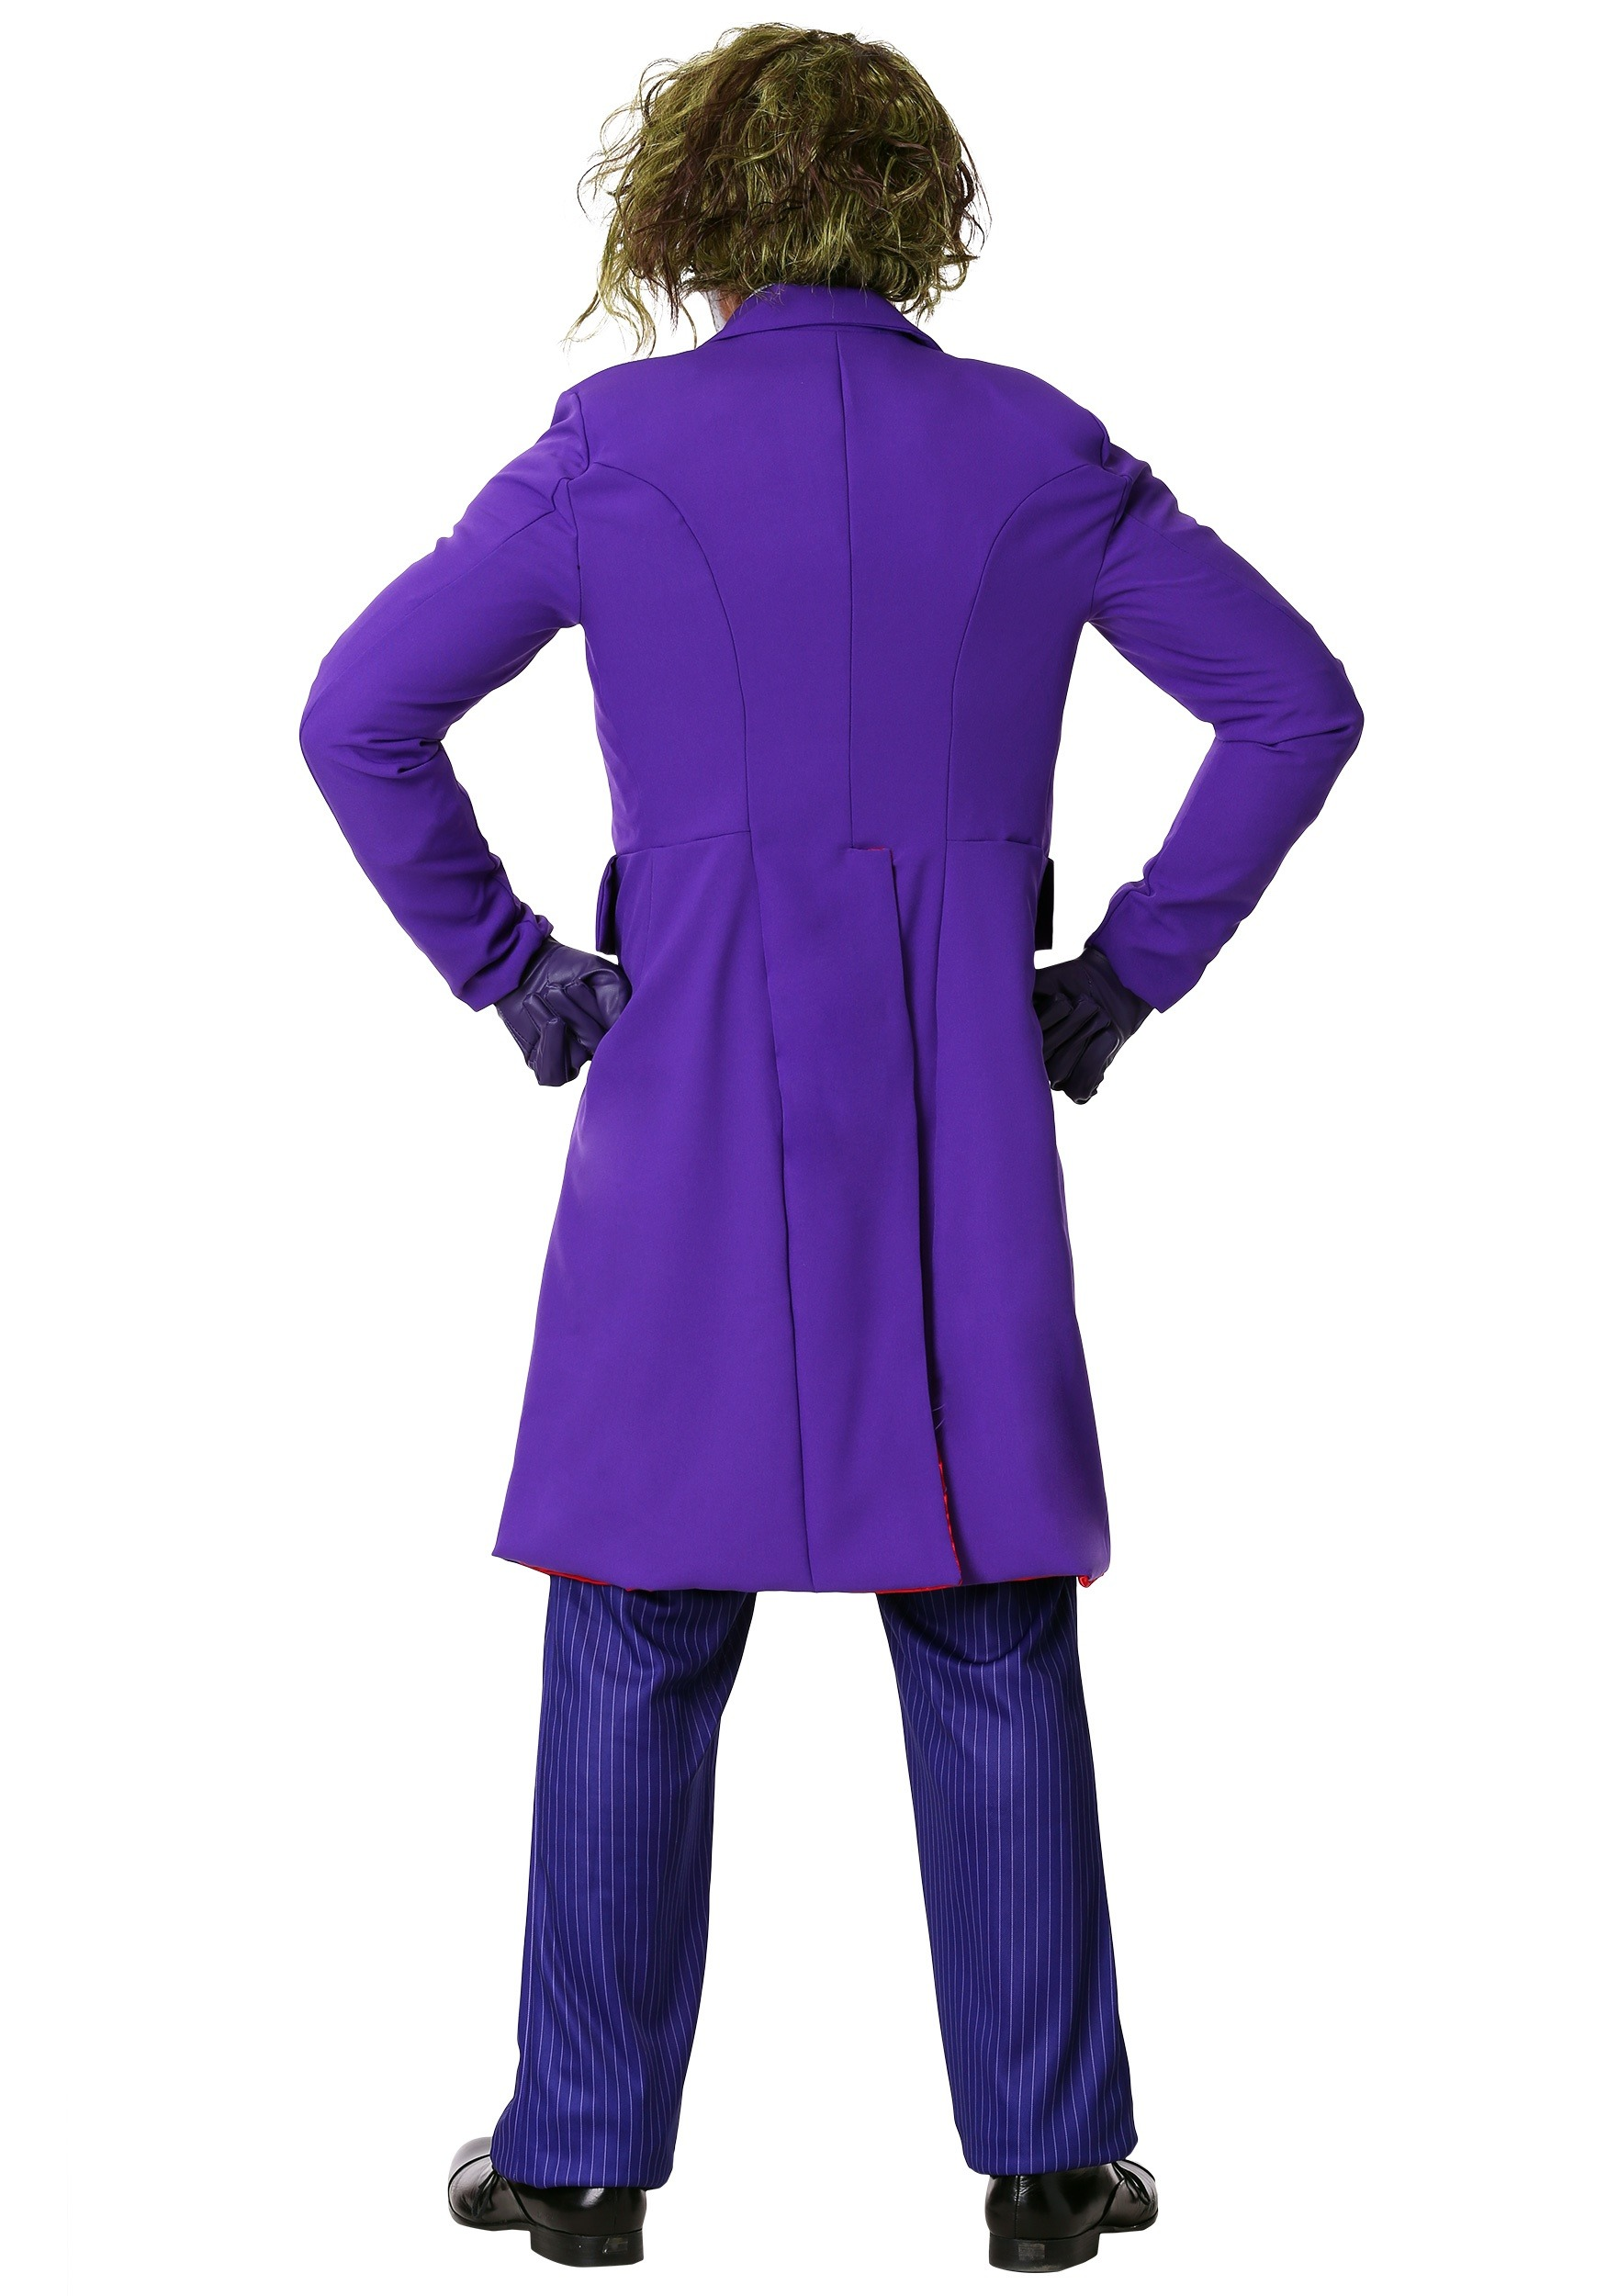 grand heritage joker costume1 grand heritage joker costume